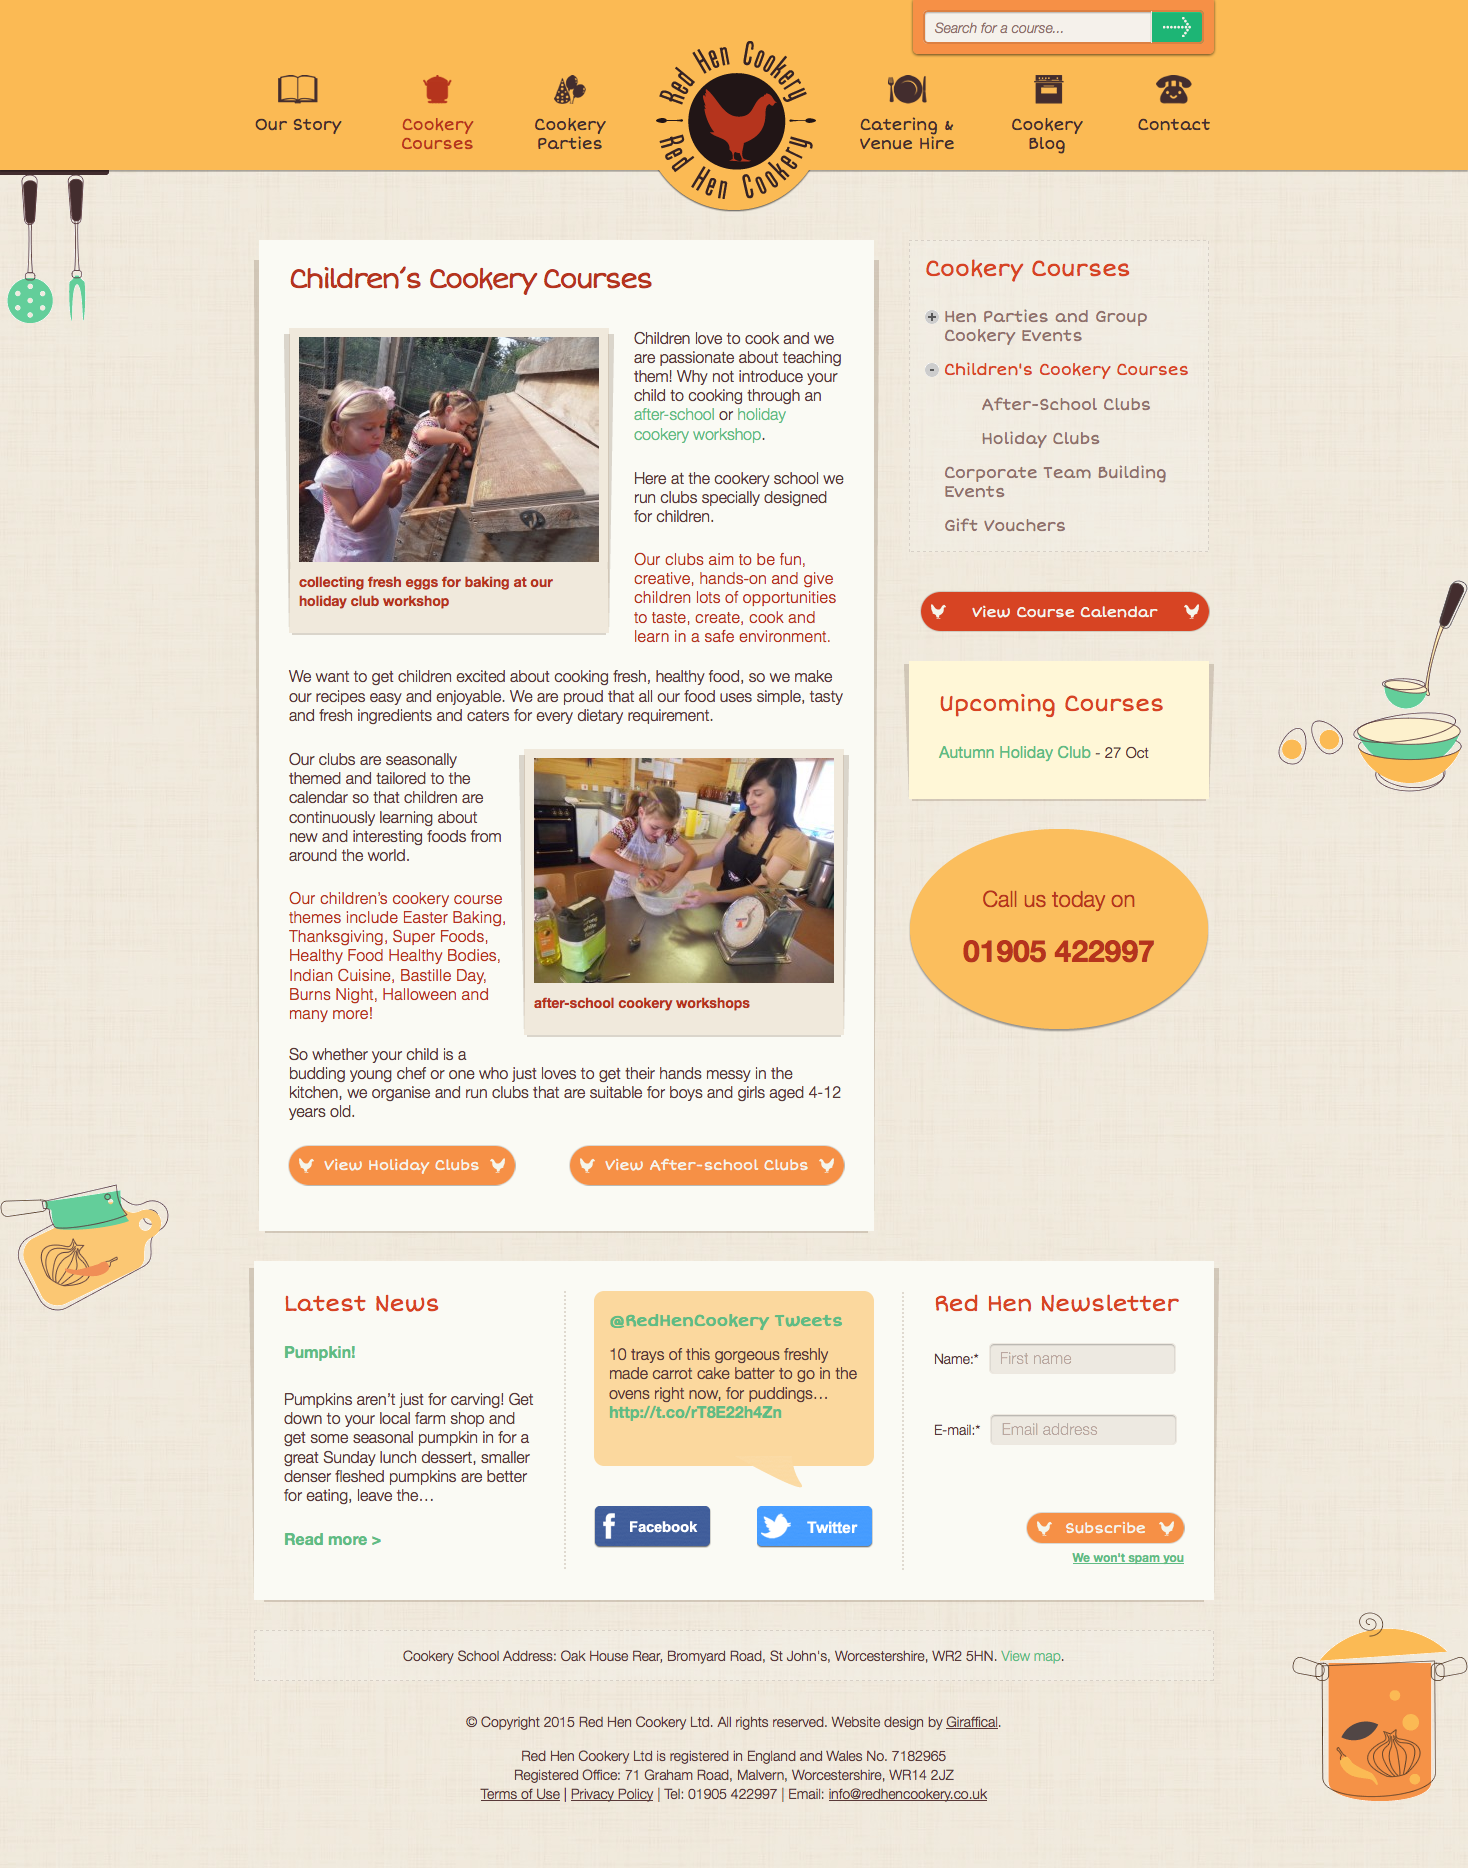 Red Hen Cookery Website Redesign - Cookery Courses Page